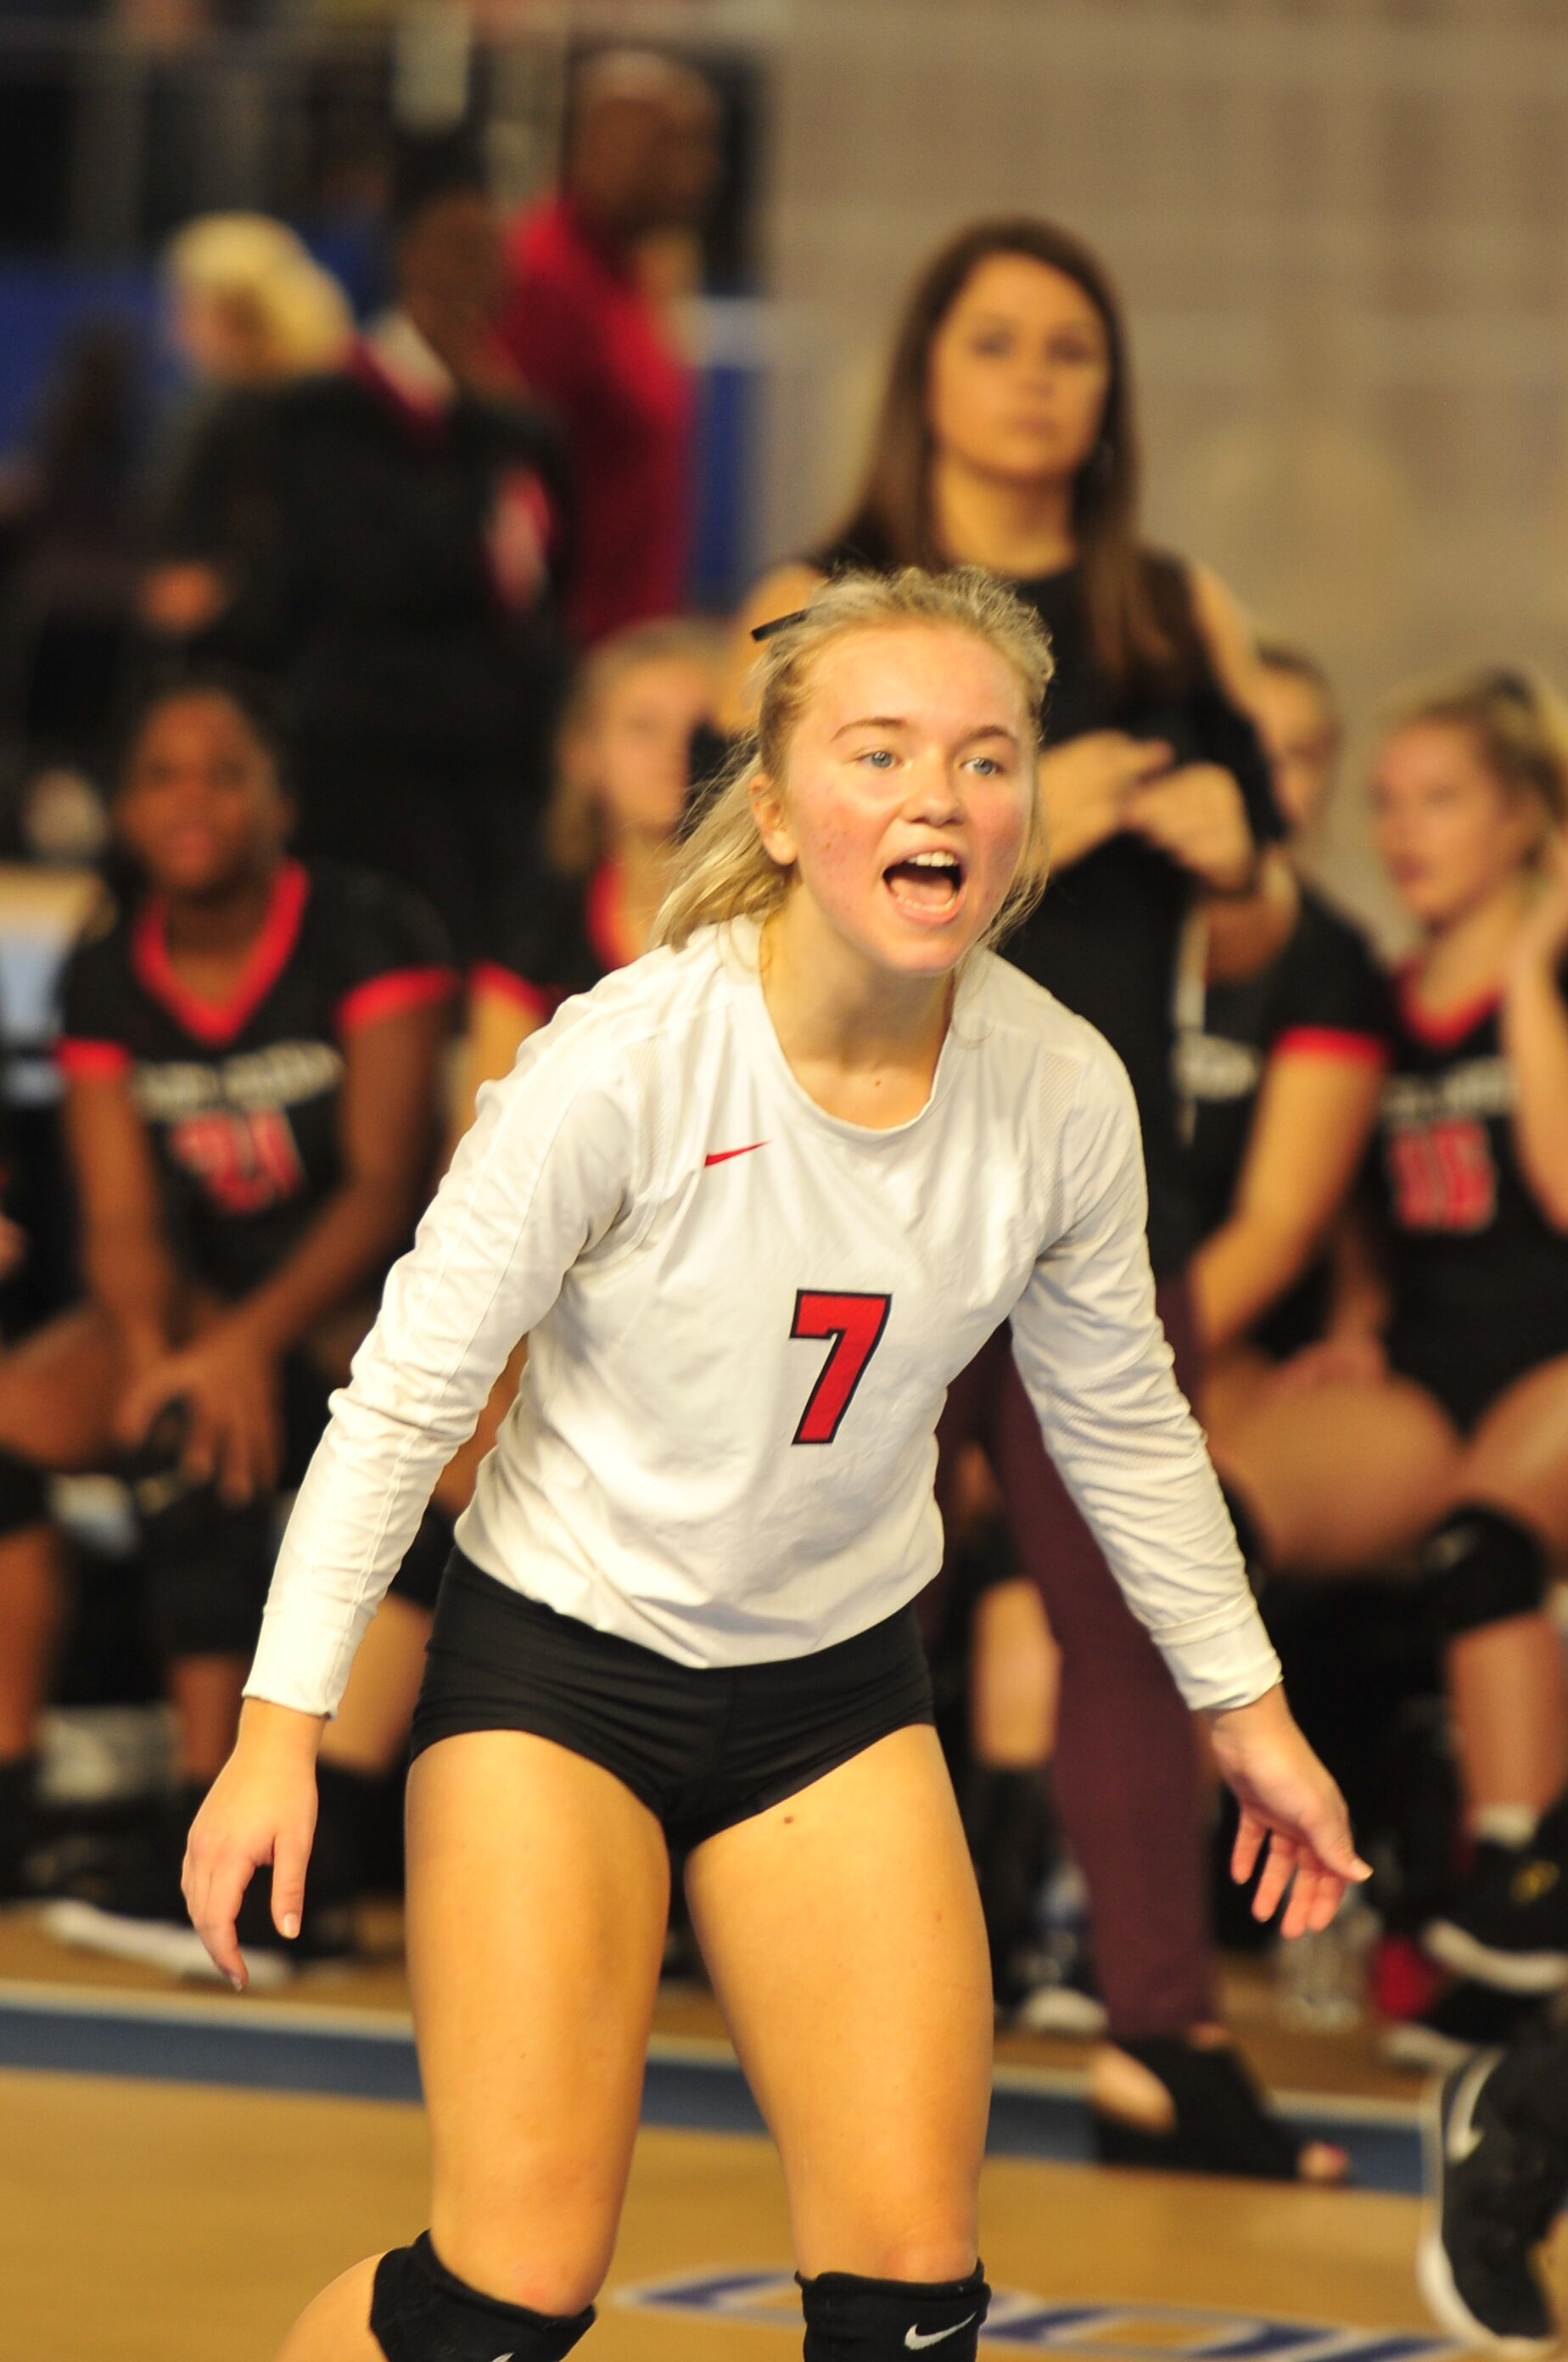 49TH AHSAA STATE VOLLEYBALL CHAMPIONSHIPS CLASS 6A QUARTERFINALS